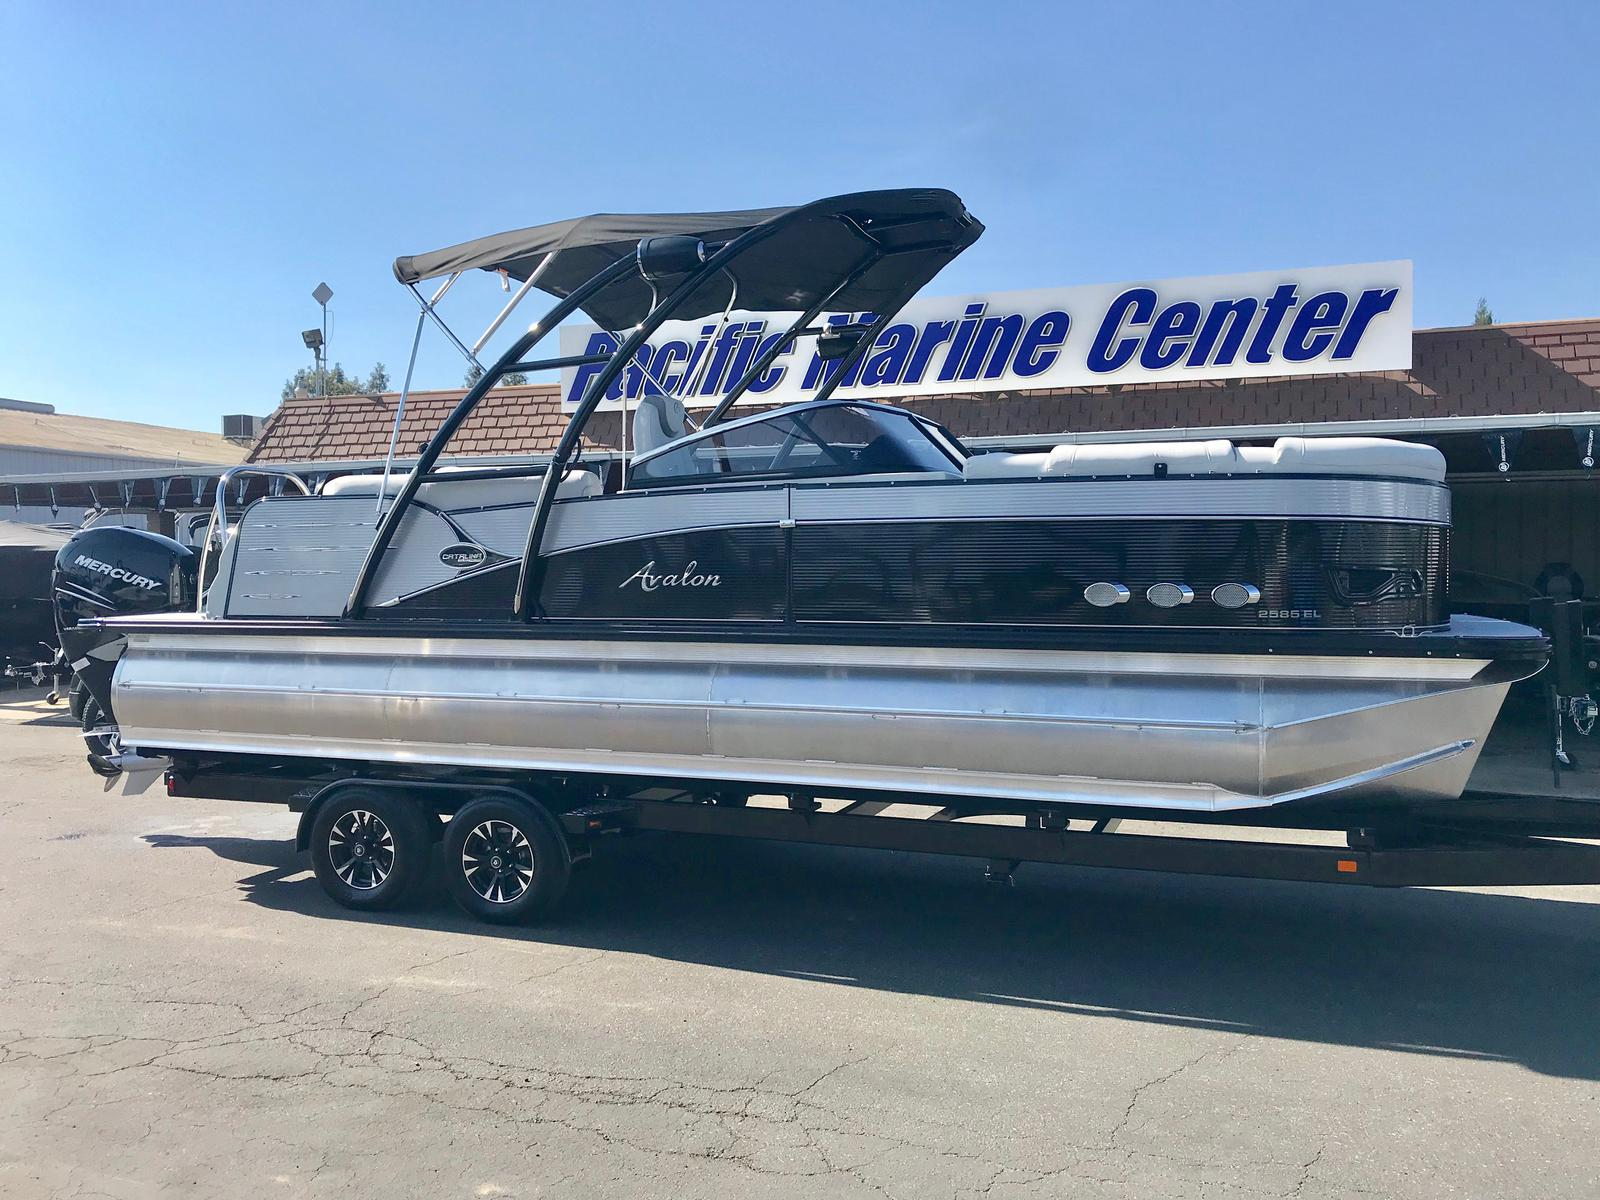 Avalon CATALINA PLAT ELITE WINDSHIELD 25 With a 350 HP Verado engine!